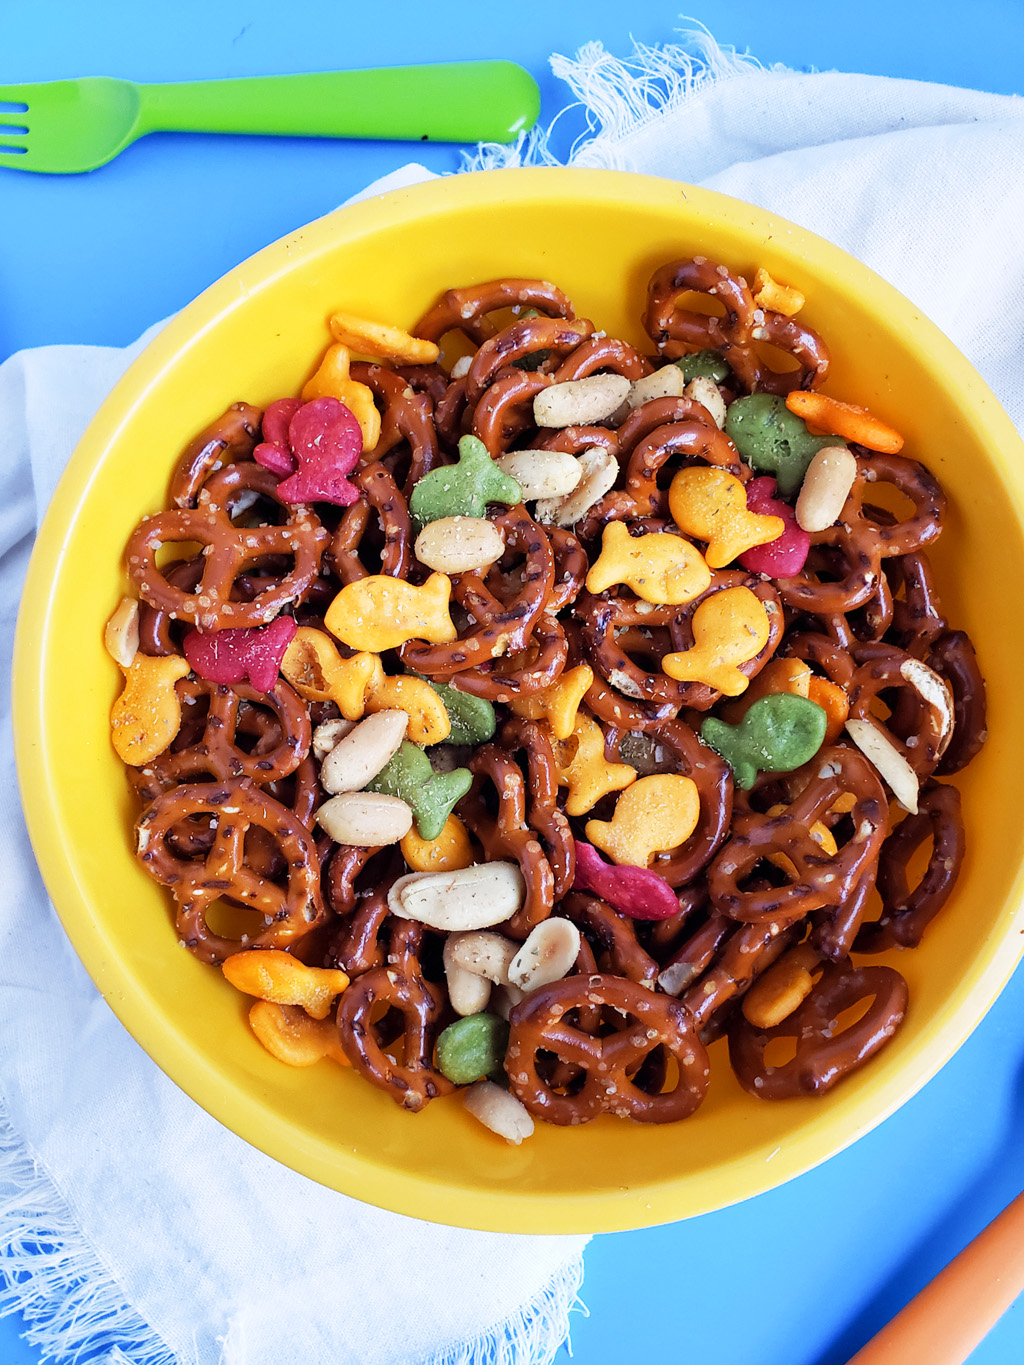 CJs Rockstar Trail Mix made with multi-colored goldfish crackers, pretzels, and peanuts in a yellow bowl on a blue surface